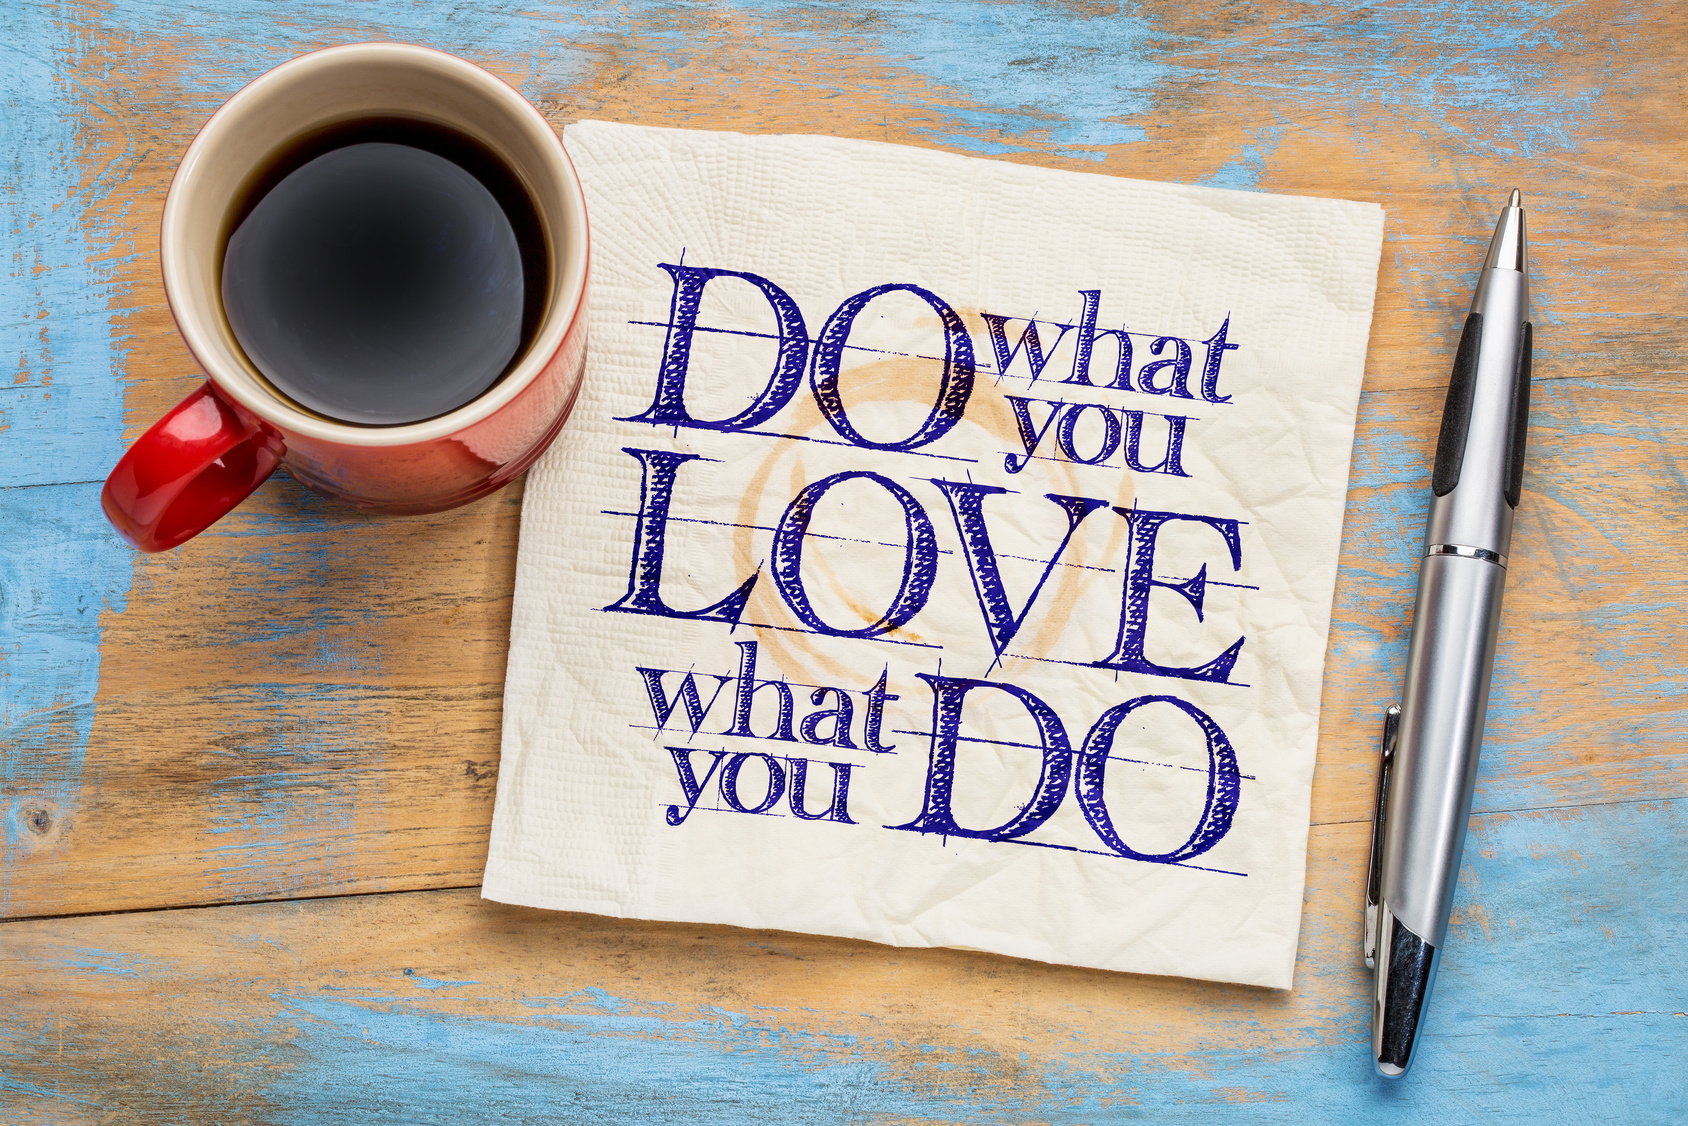 How to turn your passion and talent into your dream job